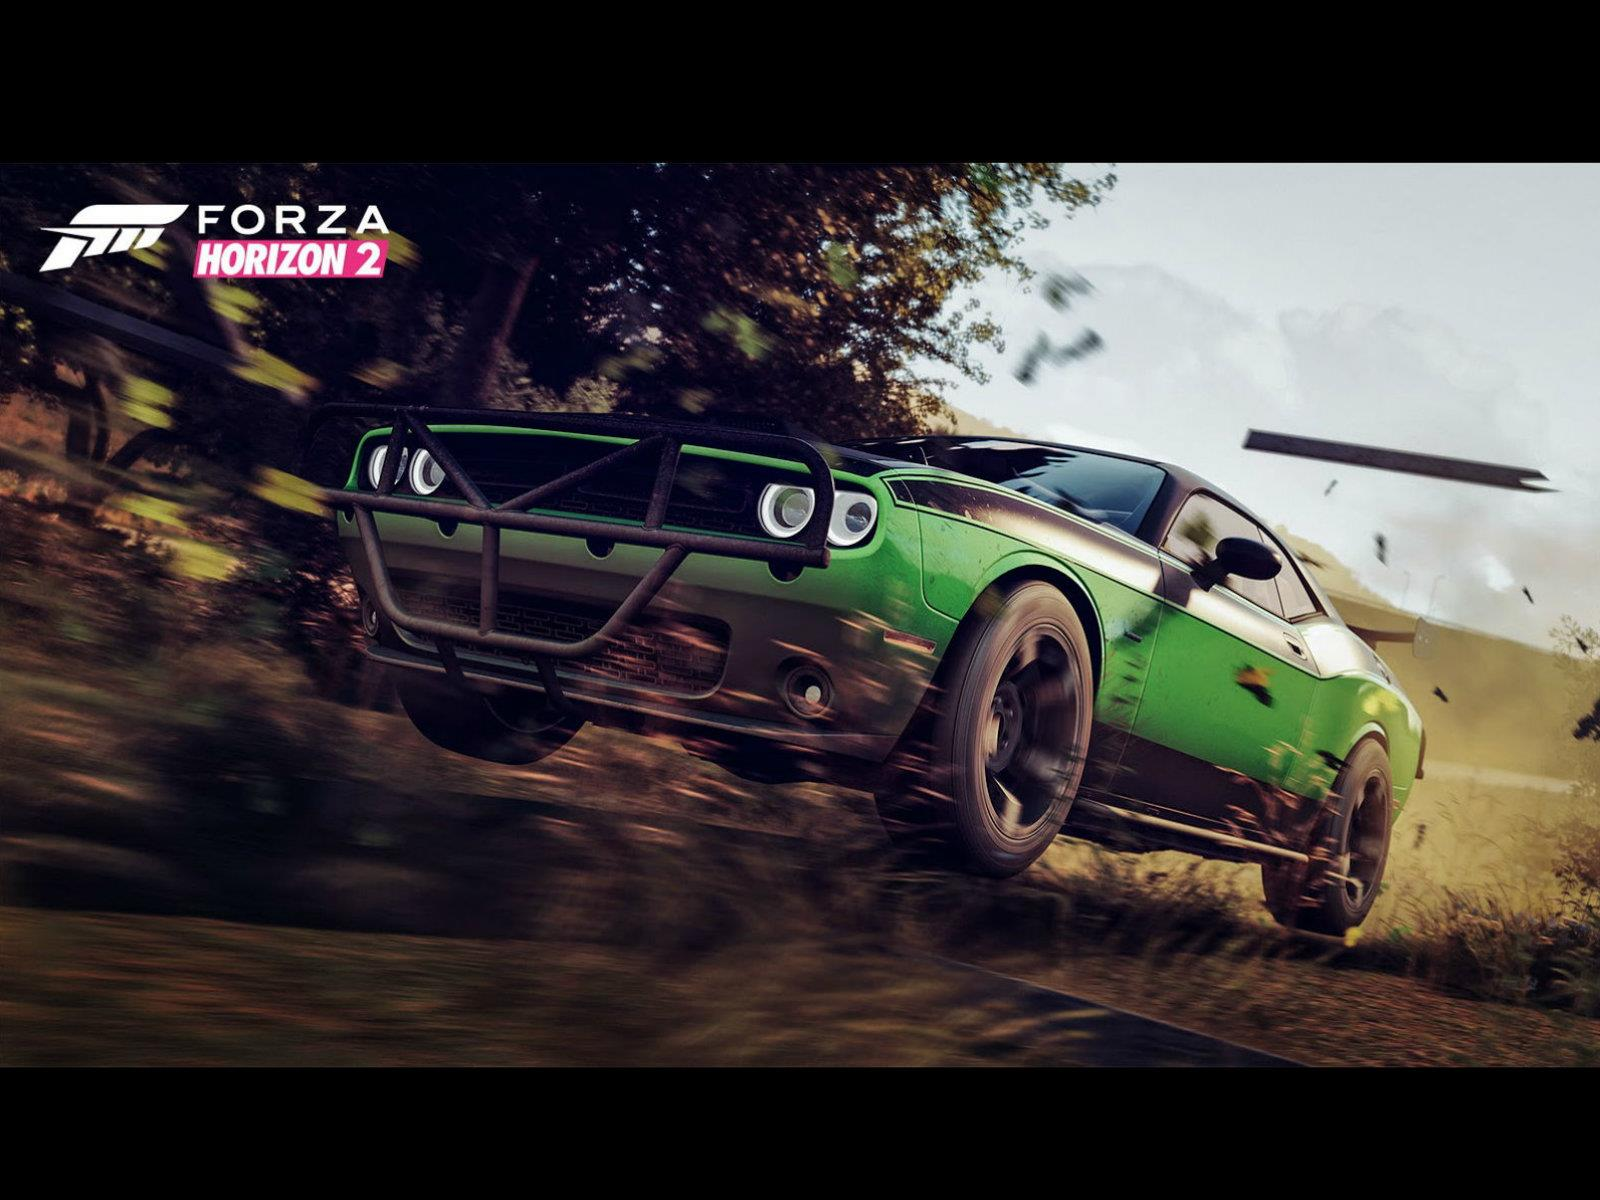 1970 Dodge Challenger Wiring Data Diagrams Alternator 8 Autos De R U00e1pidos Y Furiosos 7 Disponibles En Forza Horizon 2 Autocosmos Com Diagram